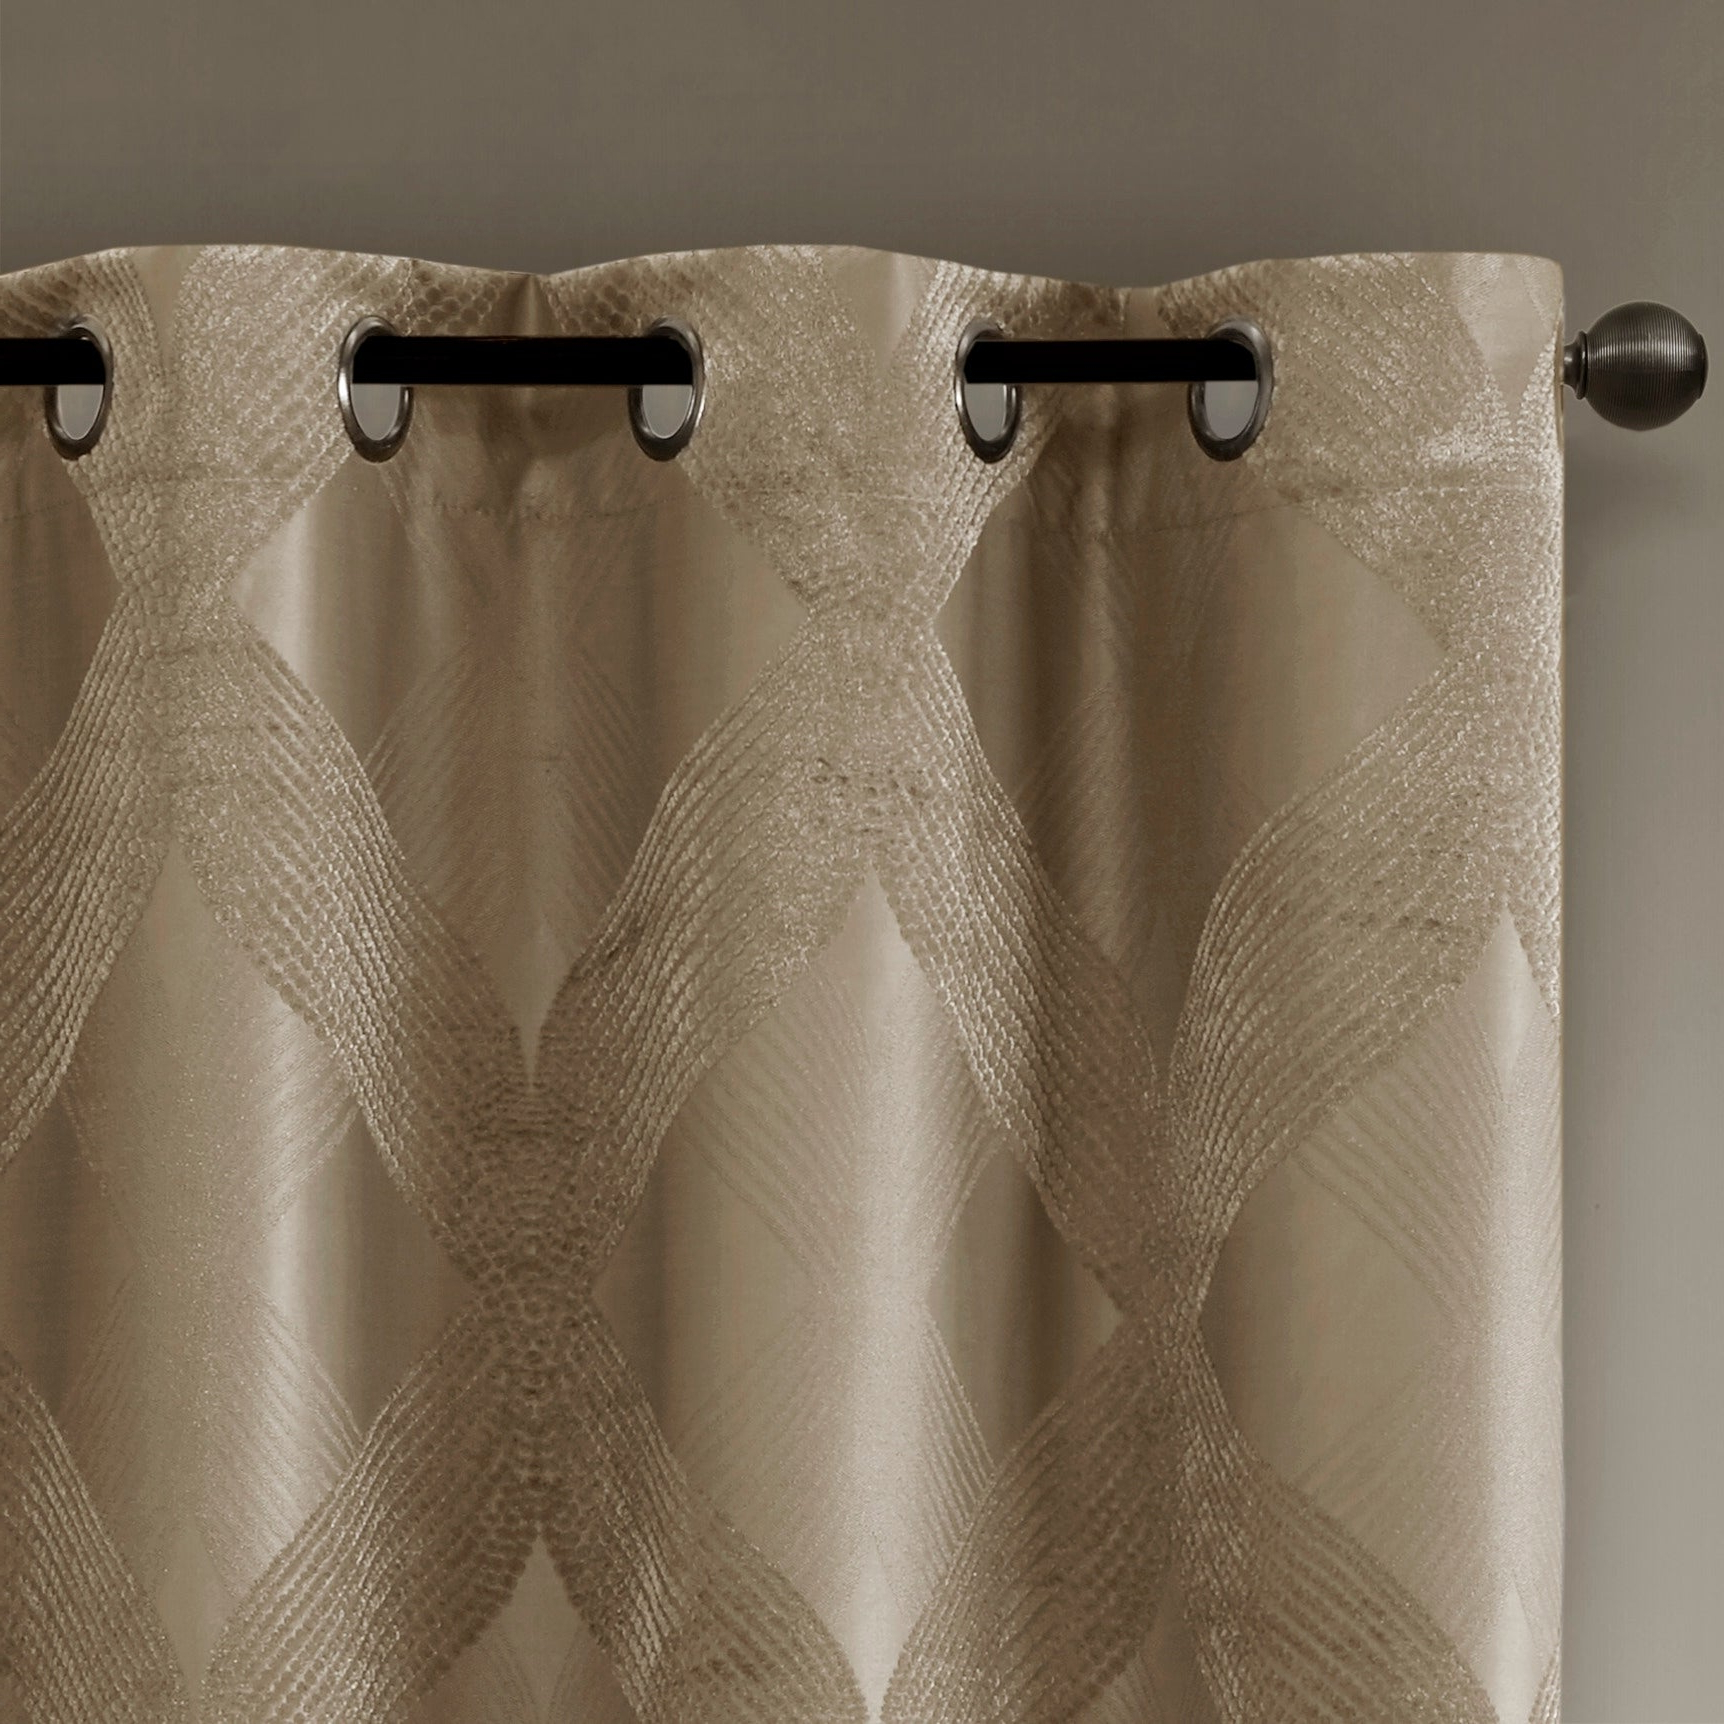 Sunsmart Abel Ogee Knitted Jacquard Total Blackout Curtain Panels In Latest Sunsmart Abel Ogee Knitted Jacquard Total Blackout Curtain Panel (View 11 of 20)